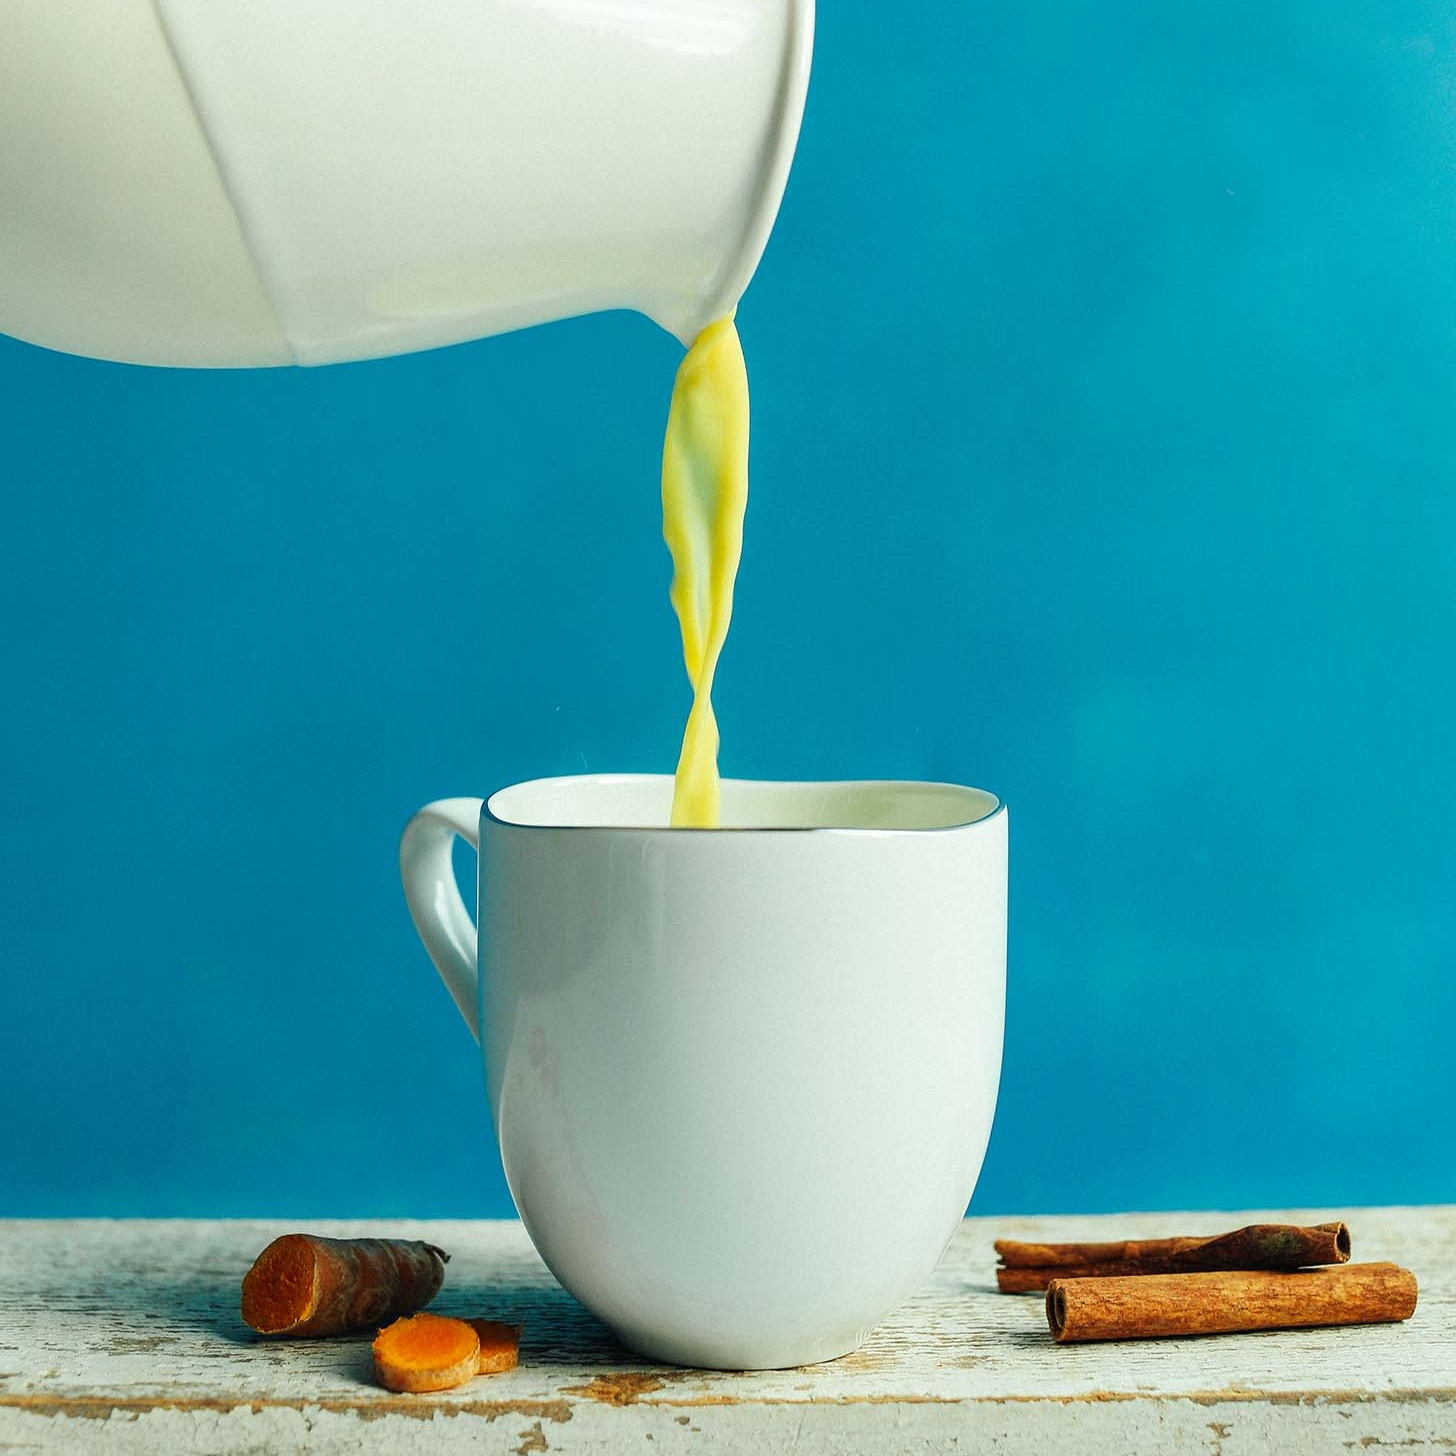 11. Golden Milk - Black pepper is said to help when one has consumed a bit too much cannabis. But how do you drink that? Golden milk of course! It's like a chai, but with turmeric. Minimalist Baker has an easy vegan recipe. Try over ice!